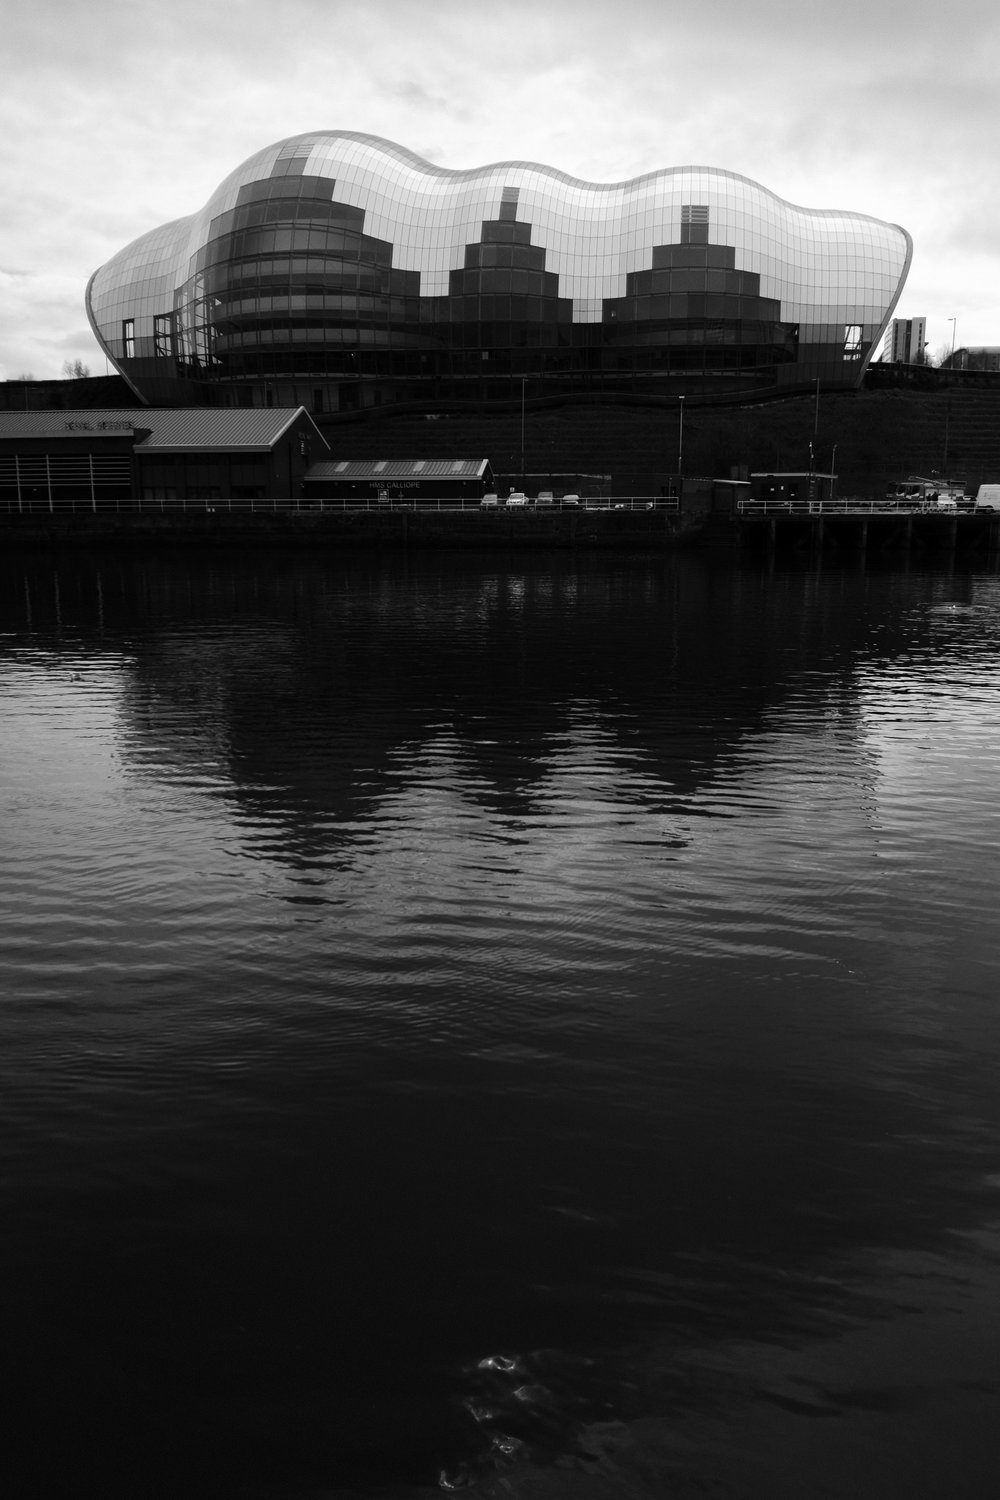 A moody black and white photo of The Sage wedding venue Newcastle upon Tyne